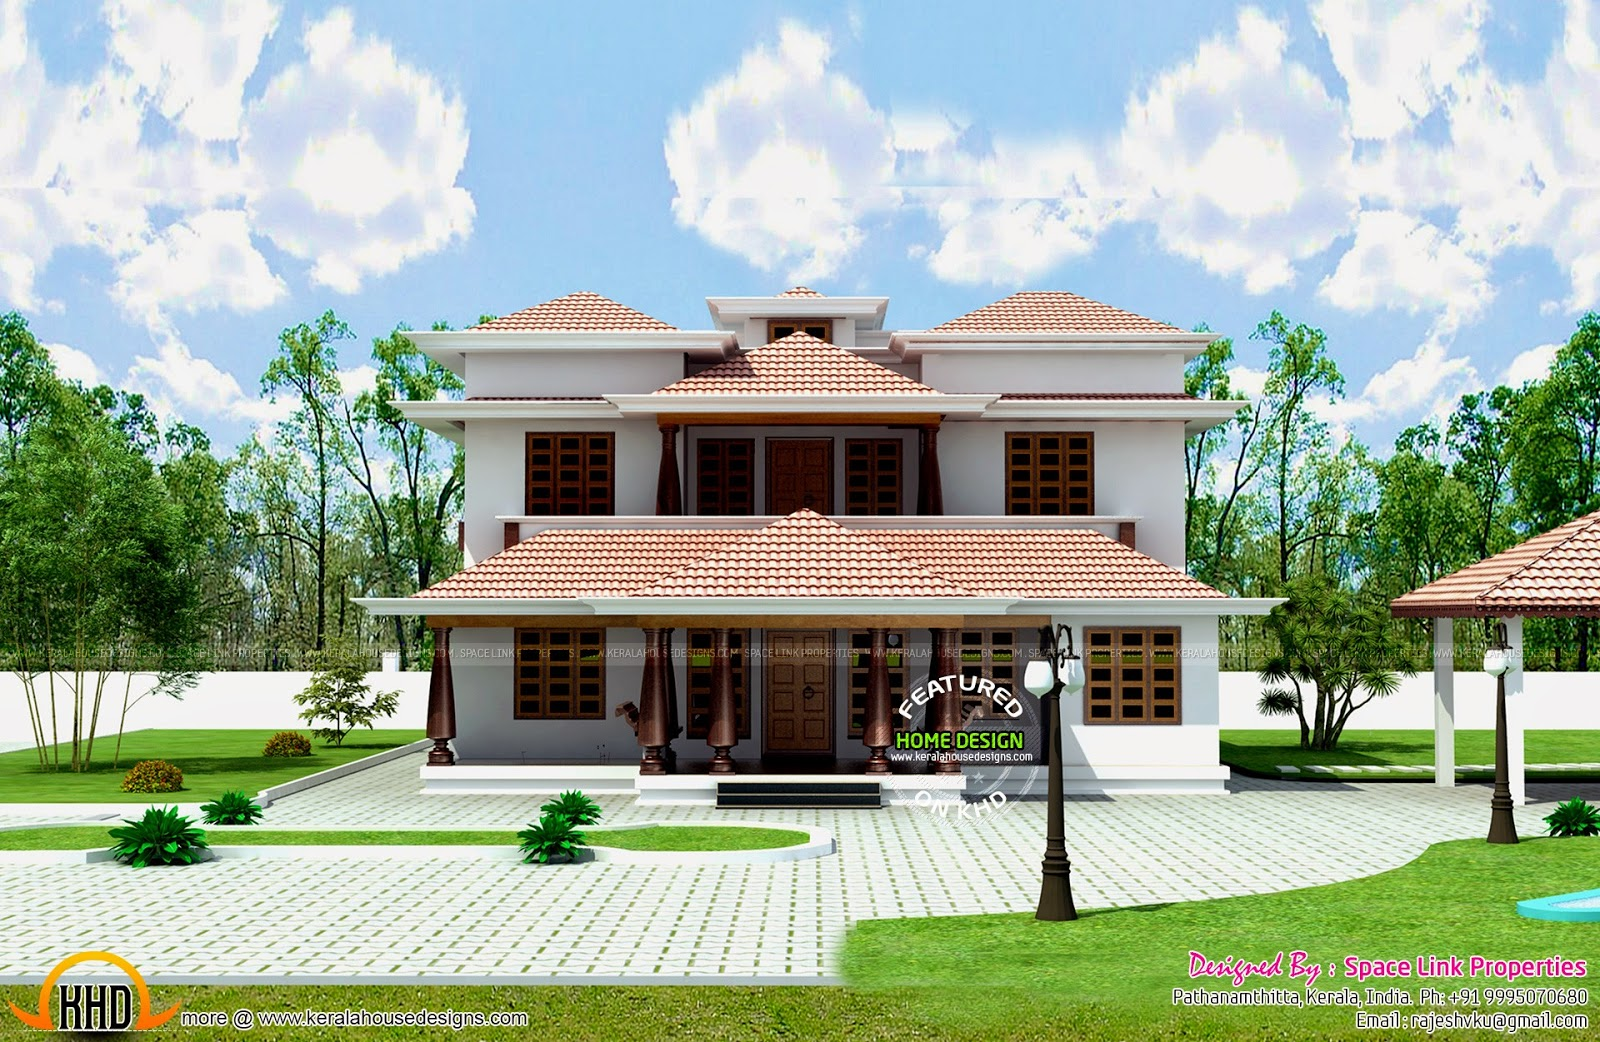 Traditional Home Designs Typical Kerala Traditional House Kerala Home Design And